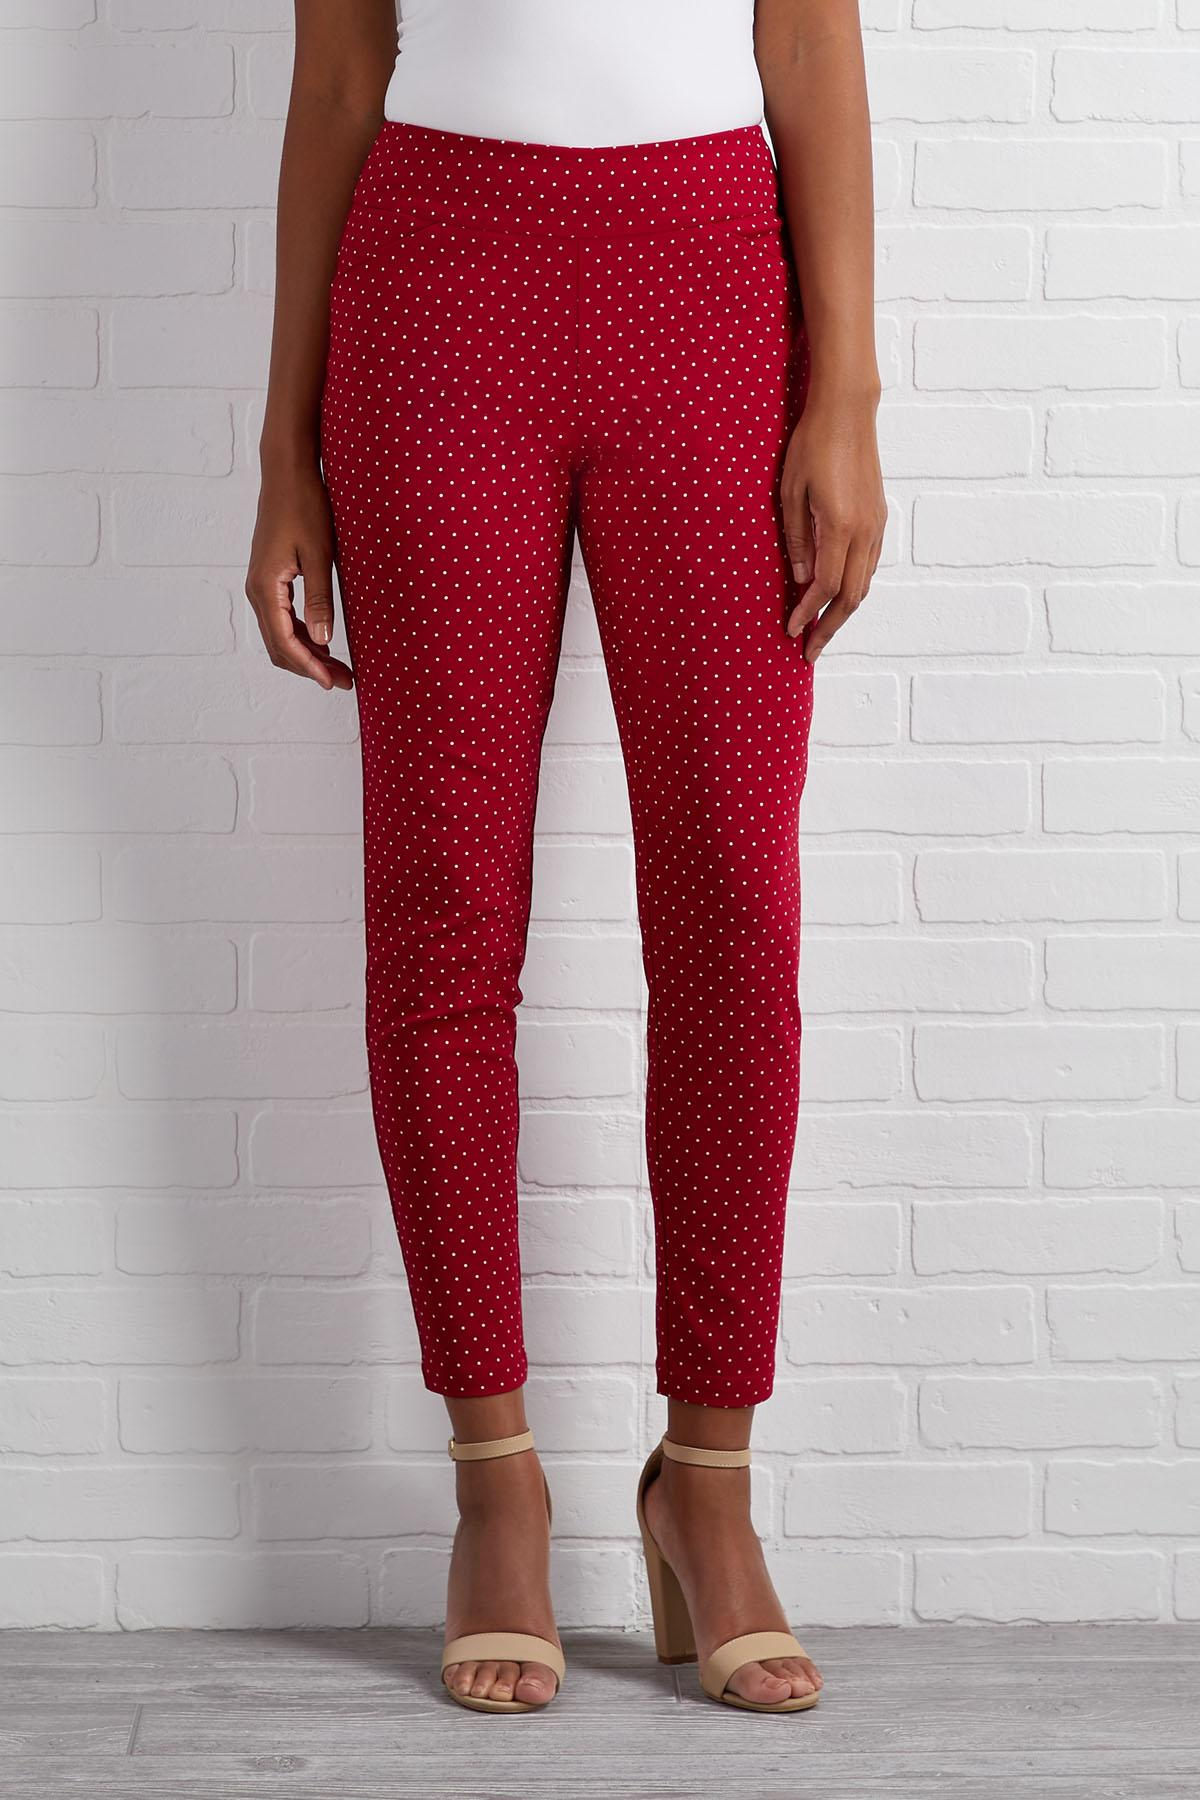 Bronze Dotted Red Pants